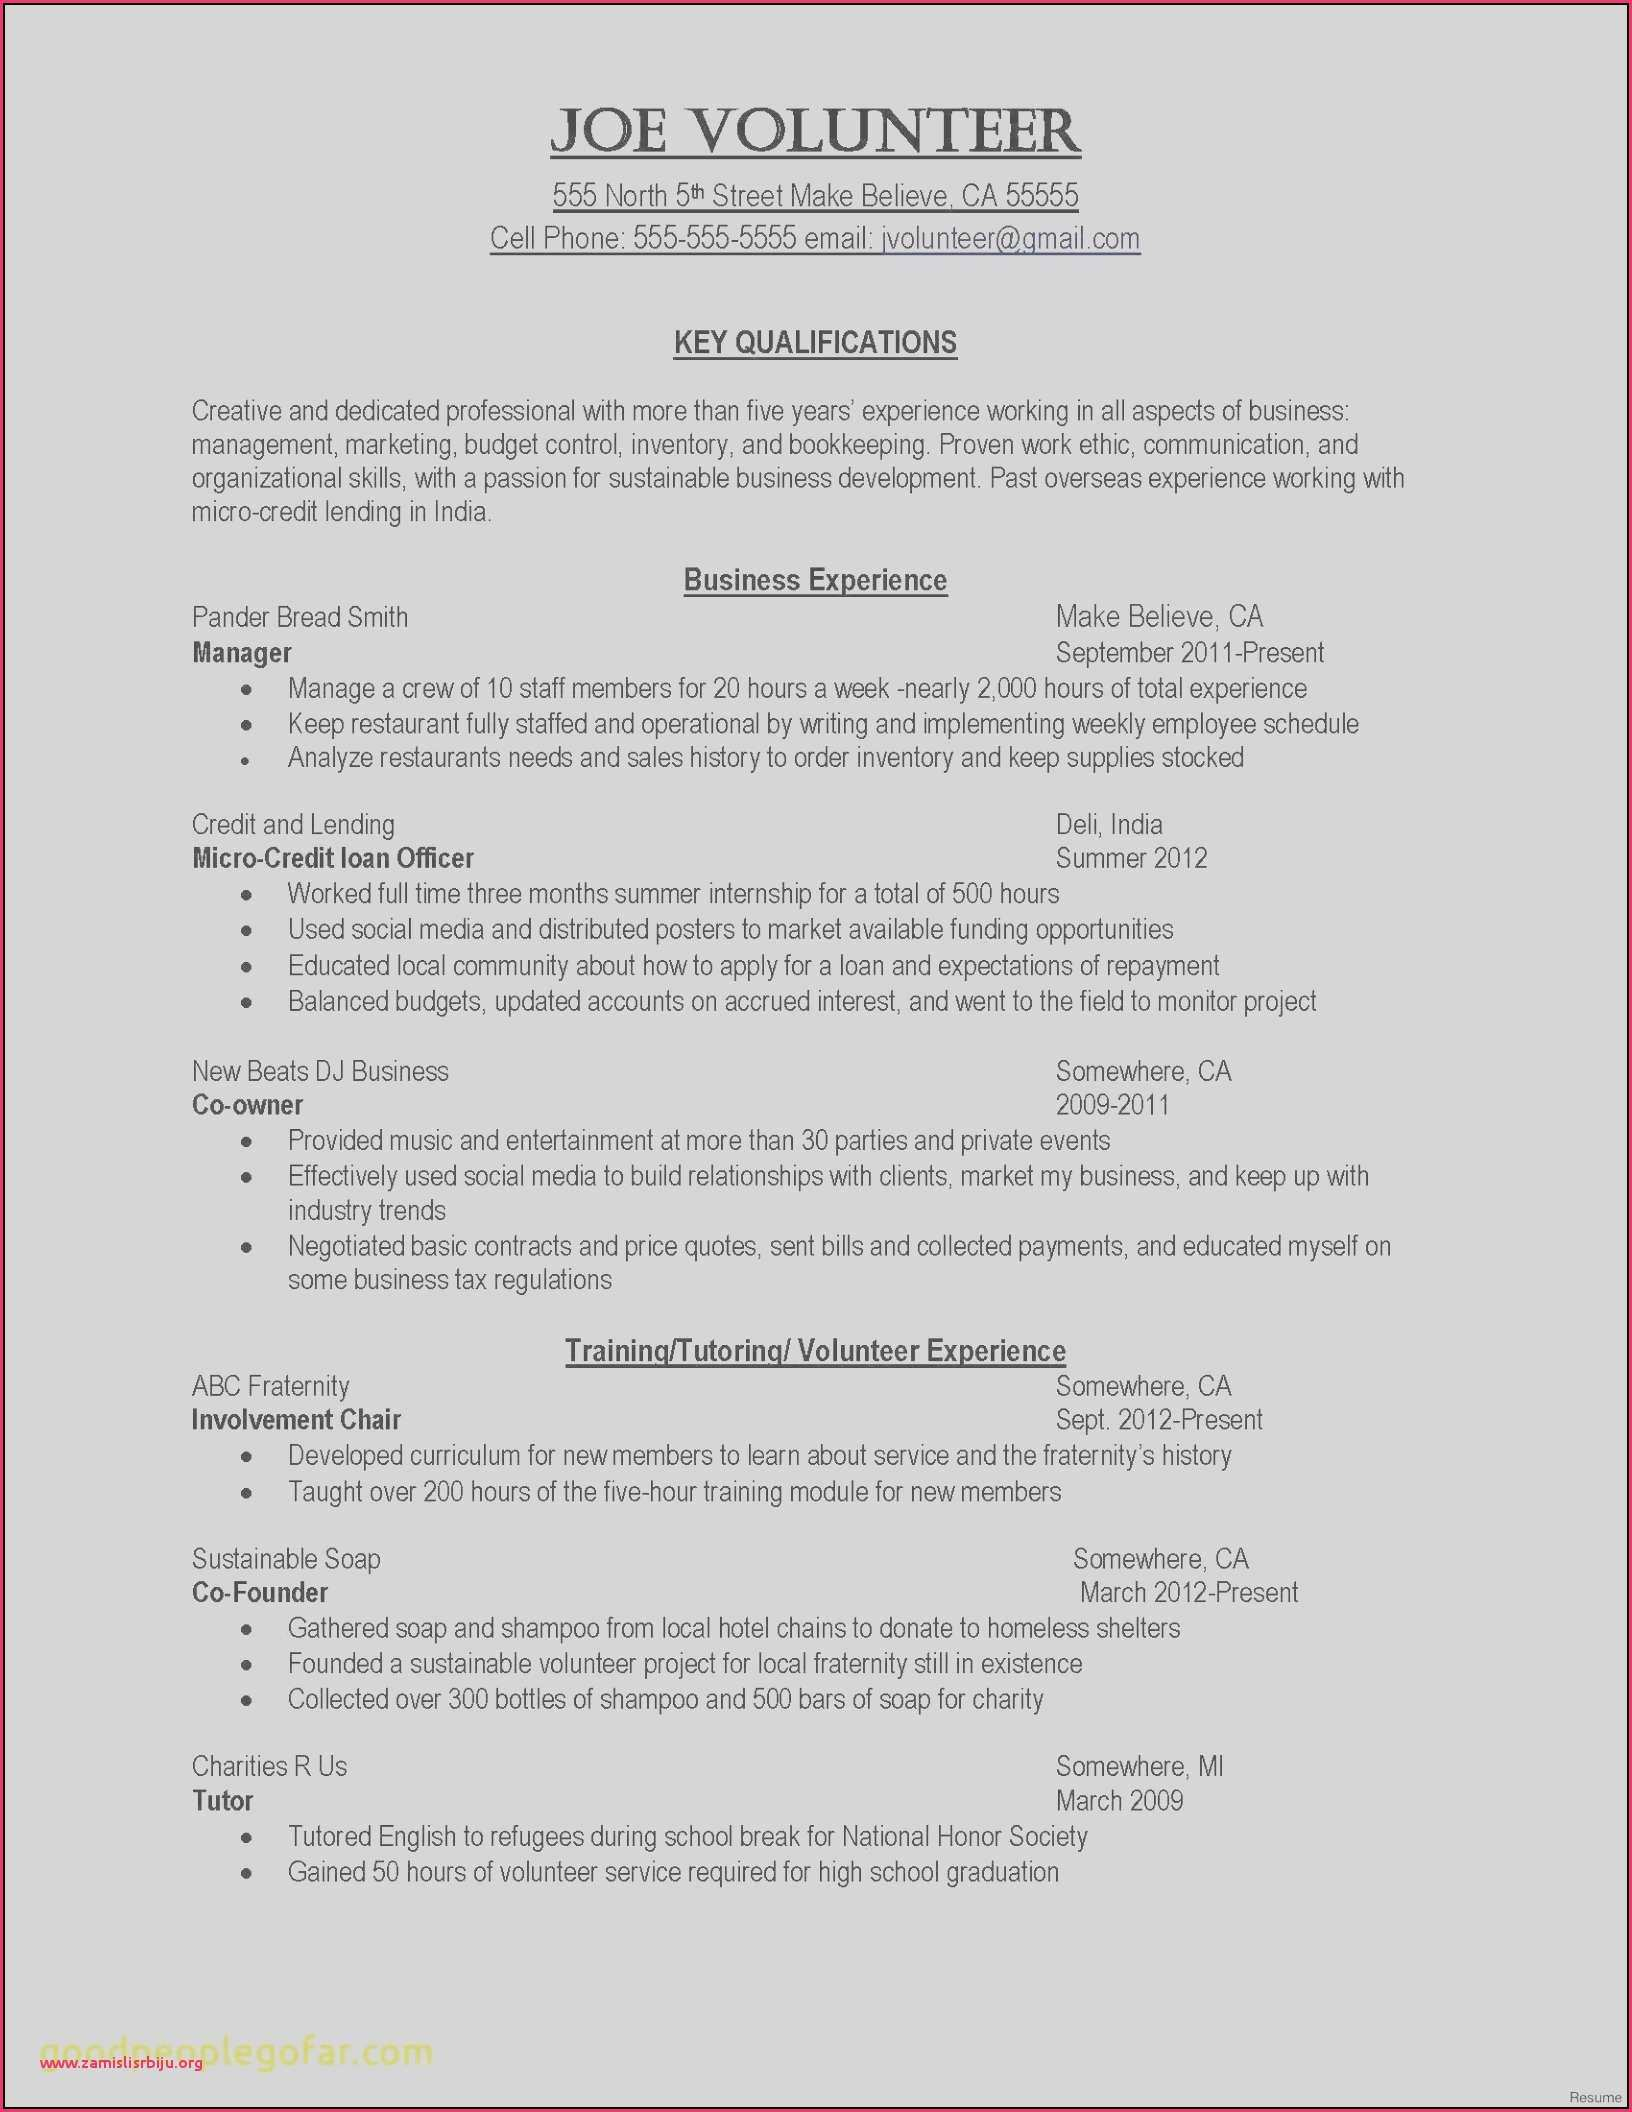 dj resume template Collection-gis engineer resume beautiful gis resume new grapher resume sample beautiful resume quotes 0d best of 9-s